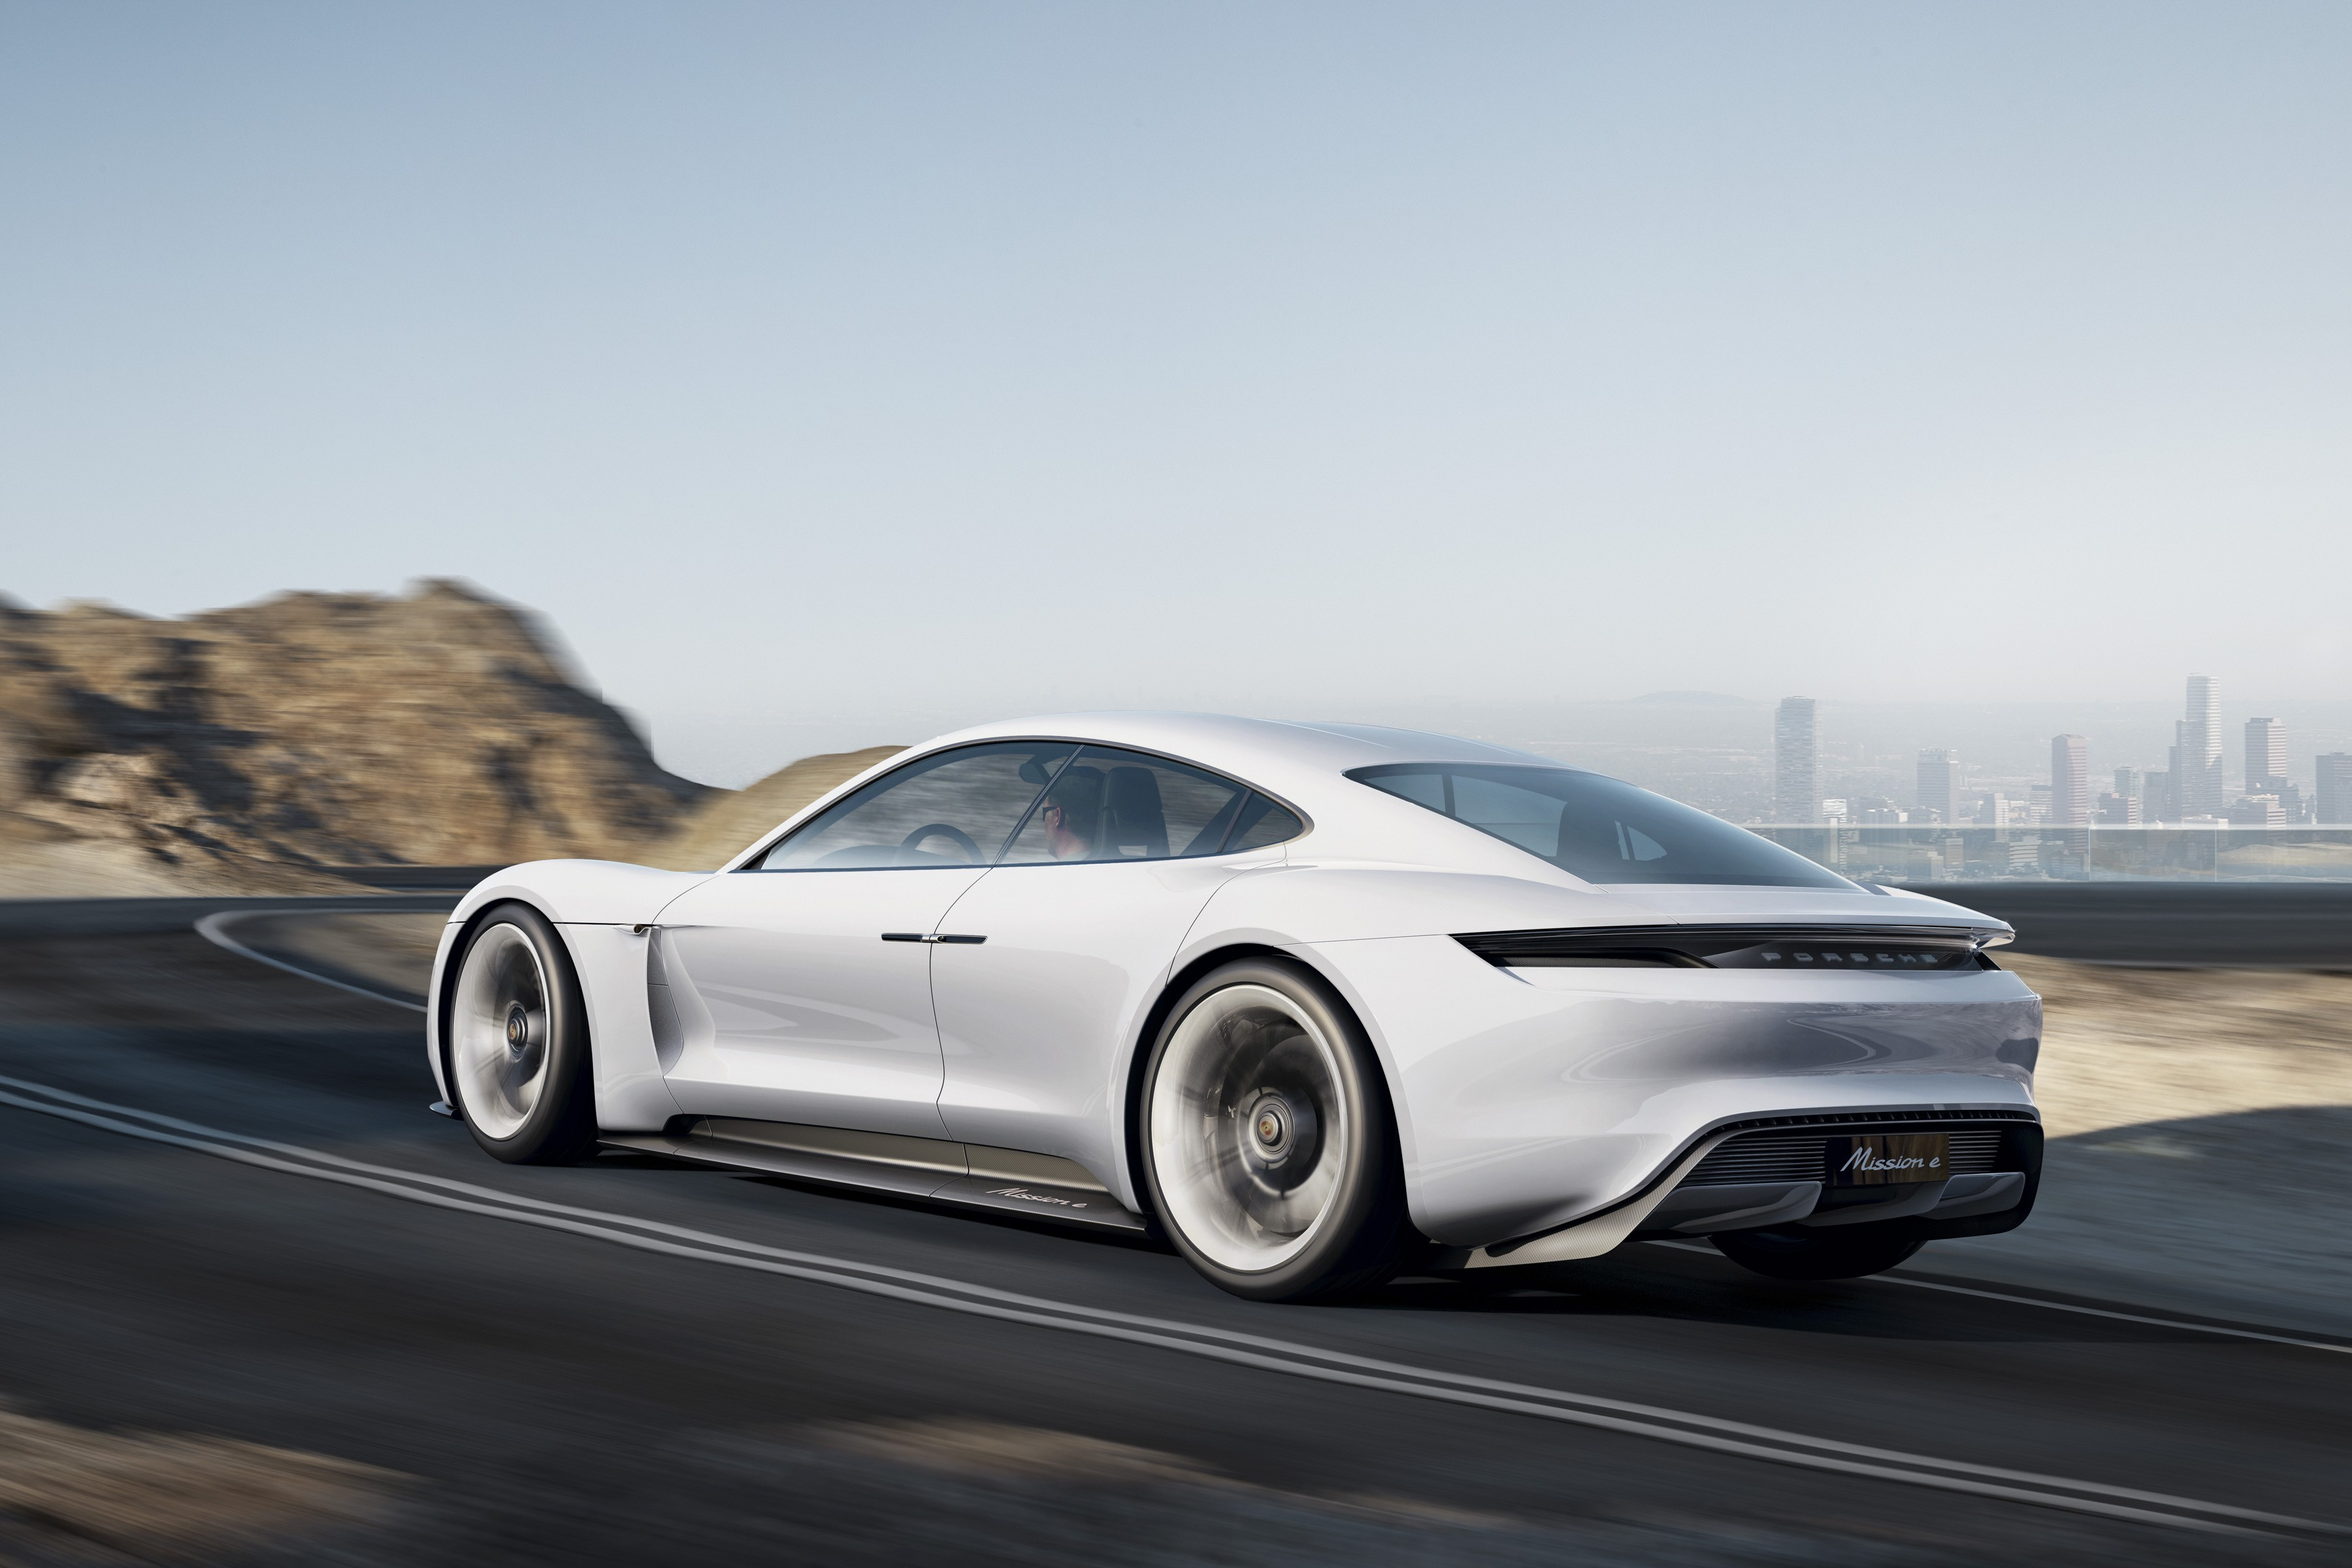 Wallpaper Porsche Mission E Electric Cars Supercar White